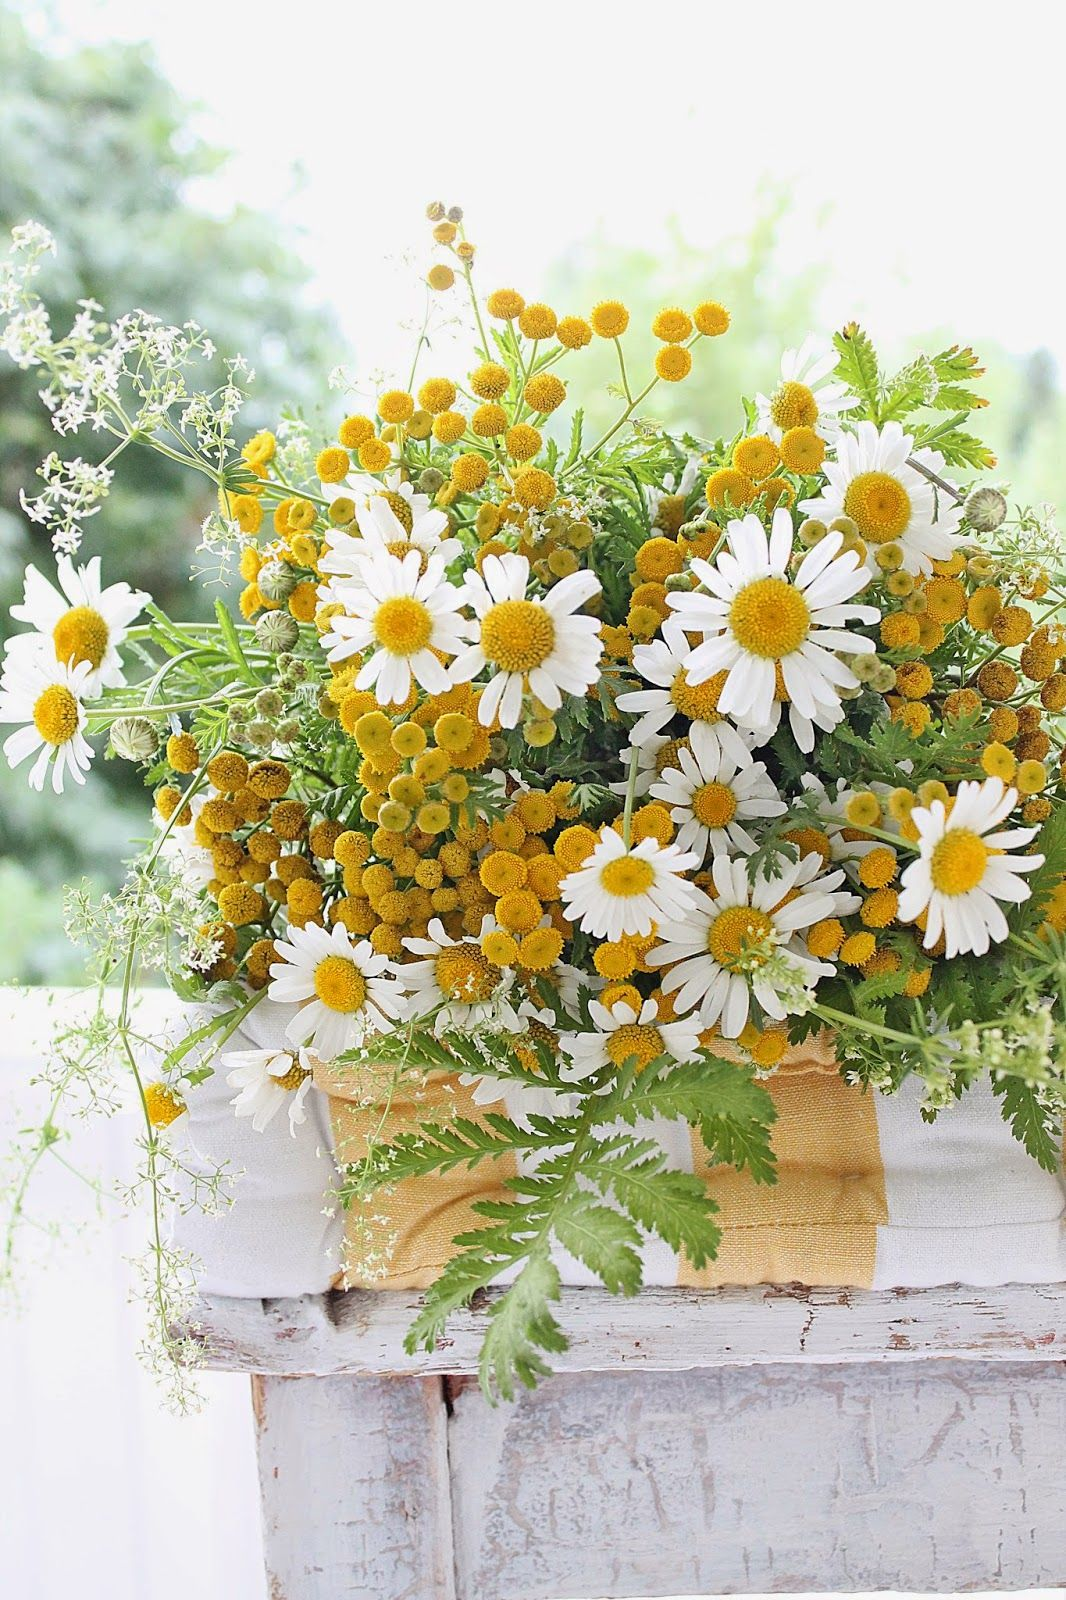 for you my friends because i smile every time i think of you uc